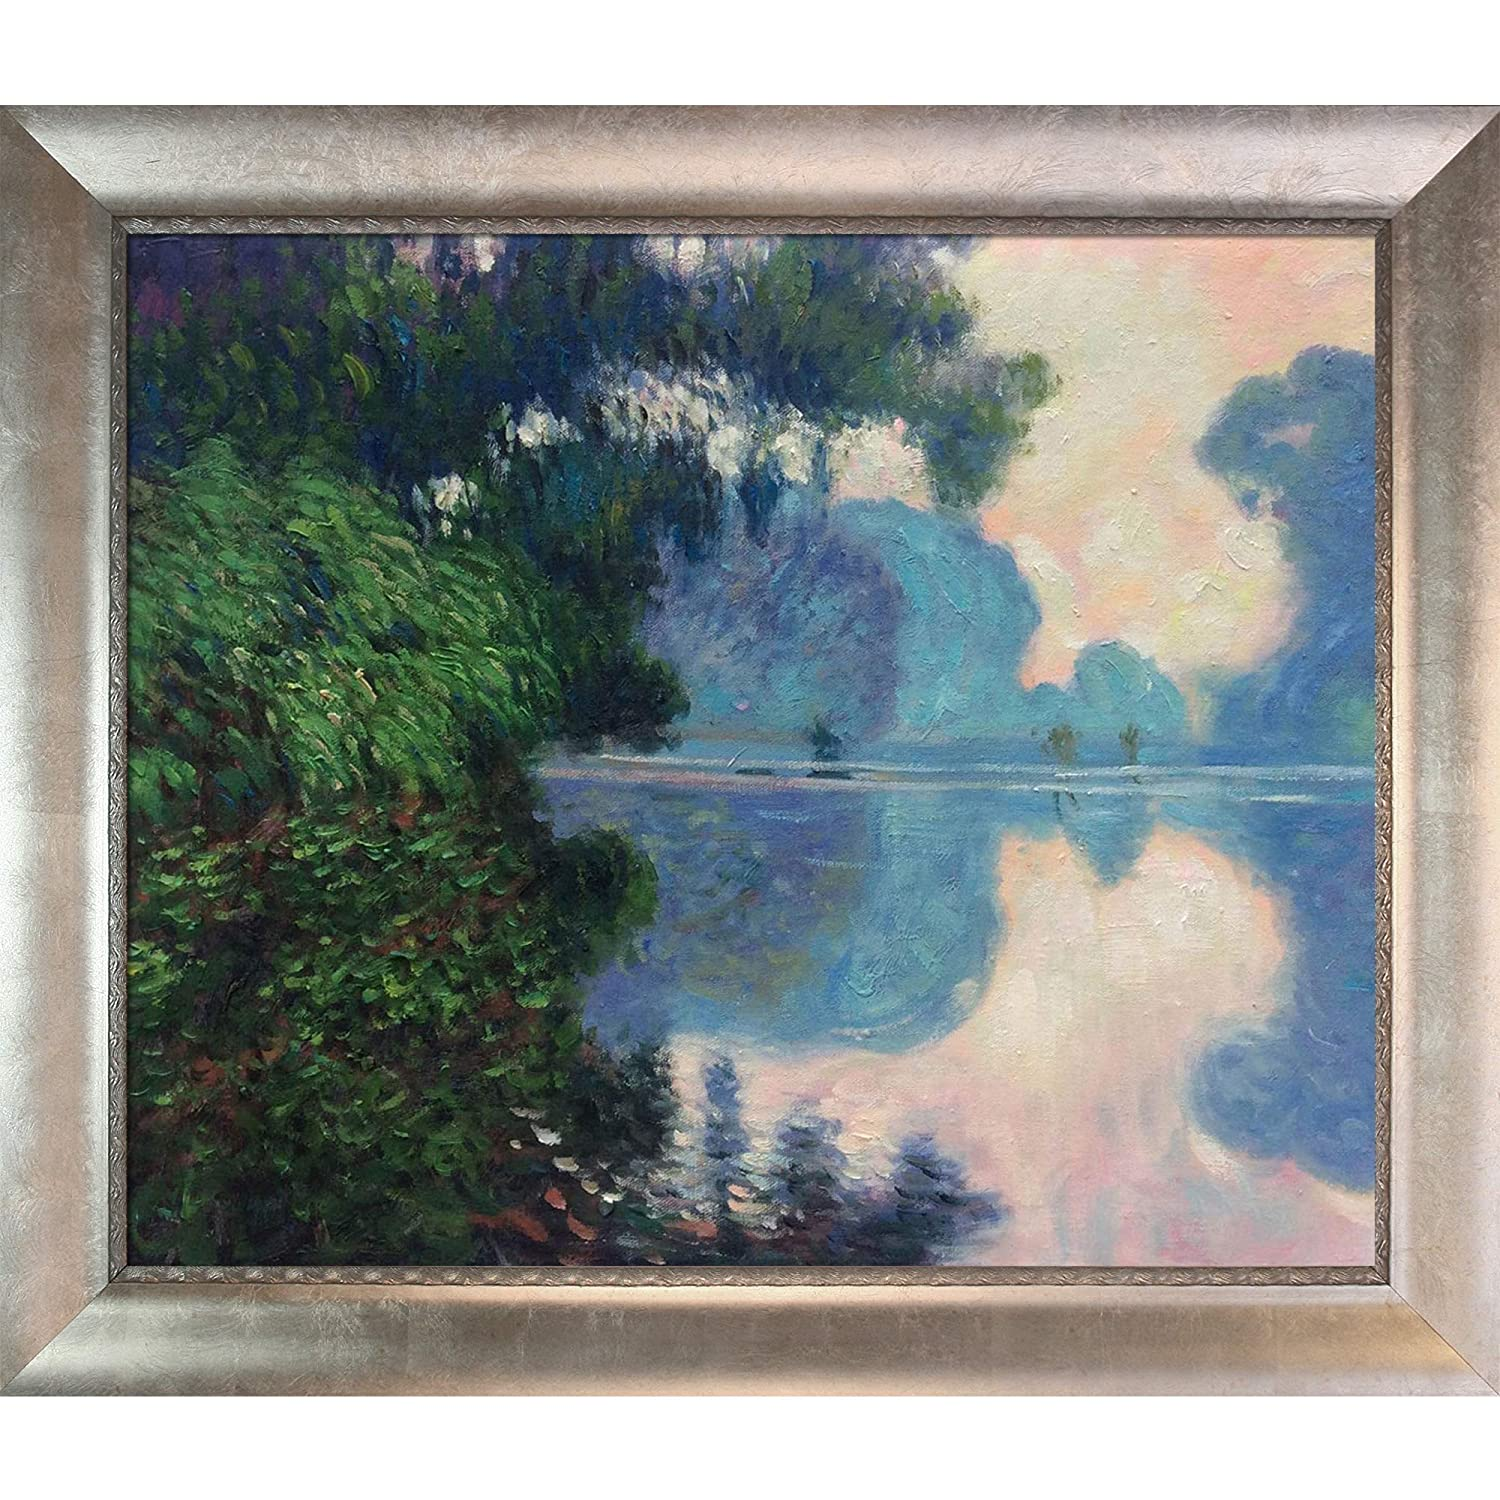 overstockArt MON2482-FR-984920X24 Monet Morning on the Seine near Giverny with Silver Scoop with Swirl Lip Silver Frame with Champagne Highlights